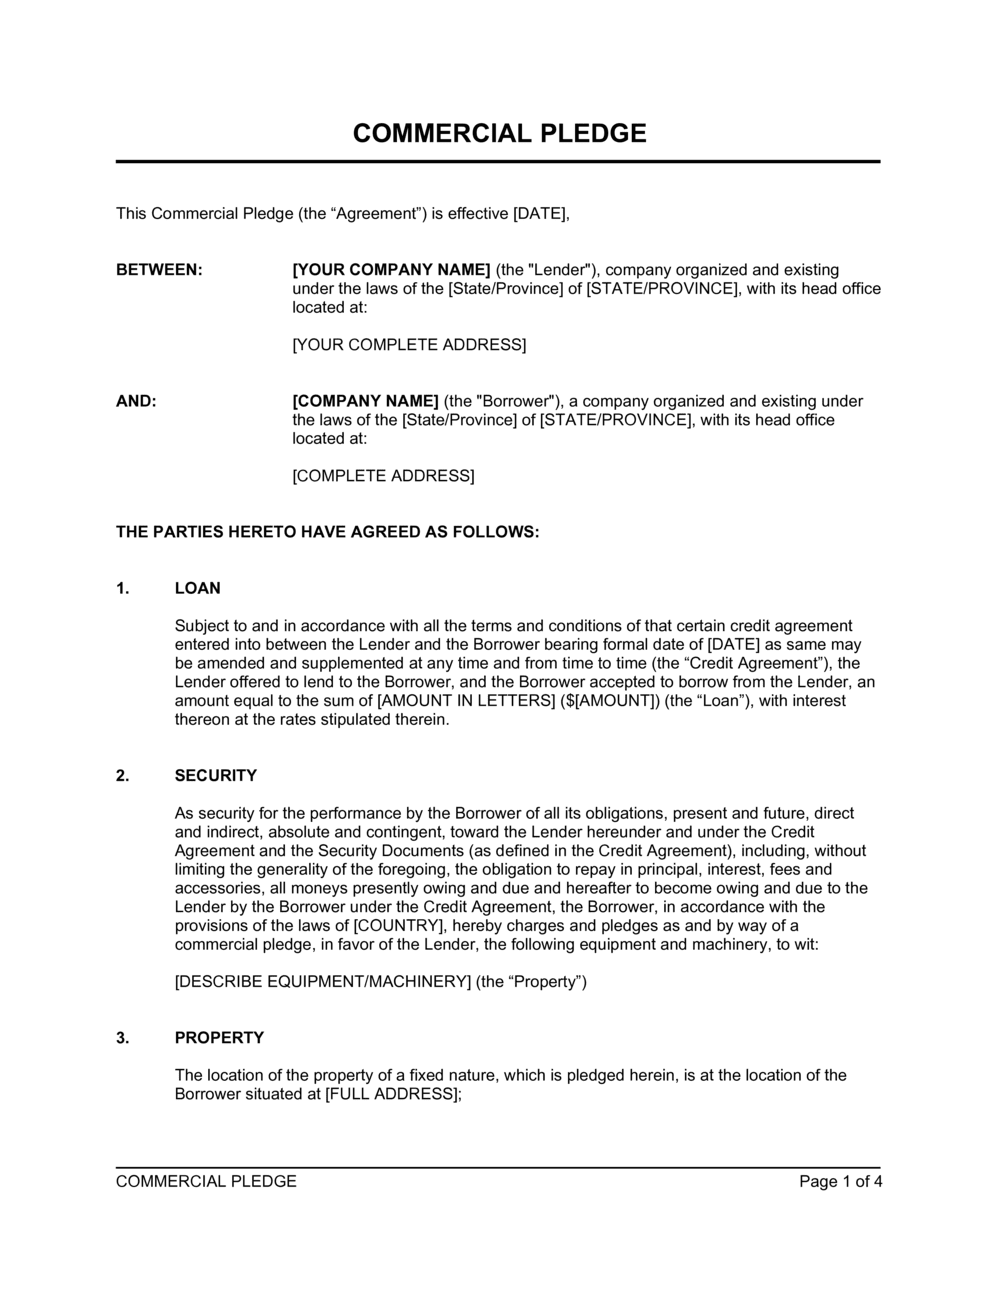 Business-in-a-Box's Commercial Pledge Equipment and Machinery Template